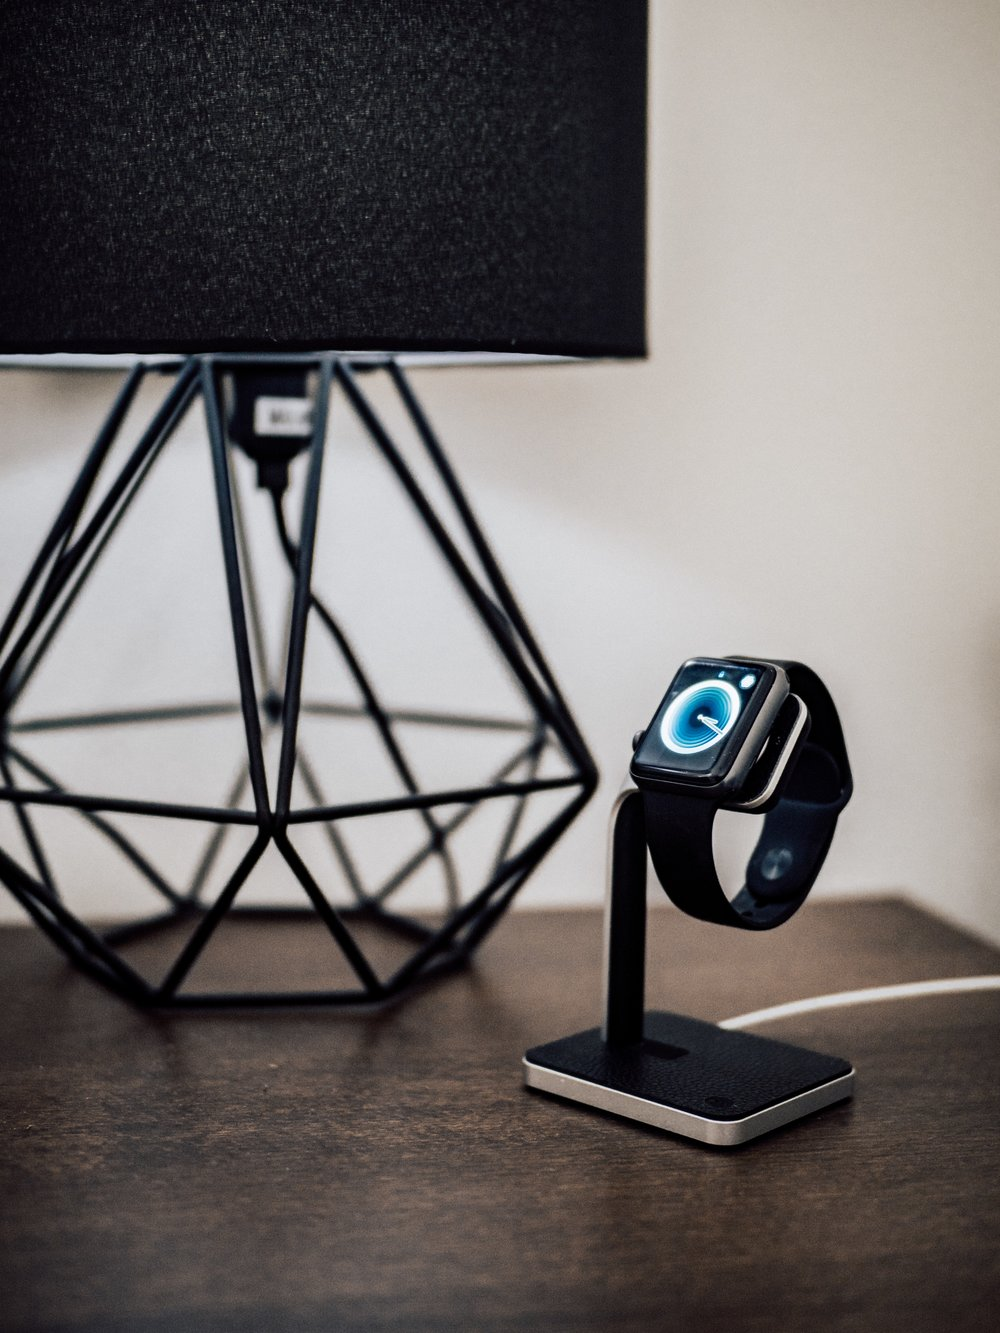 Apple Watch Series 2 iOS12 Stand